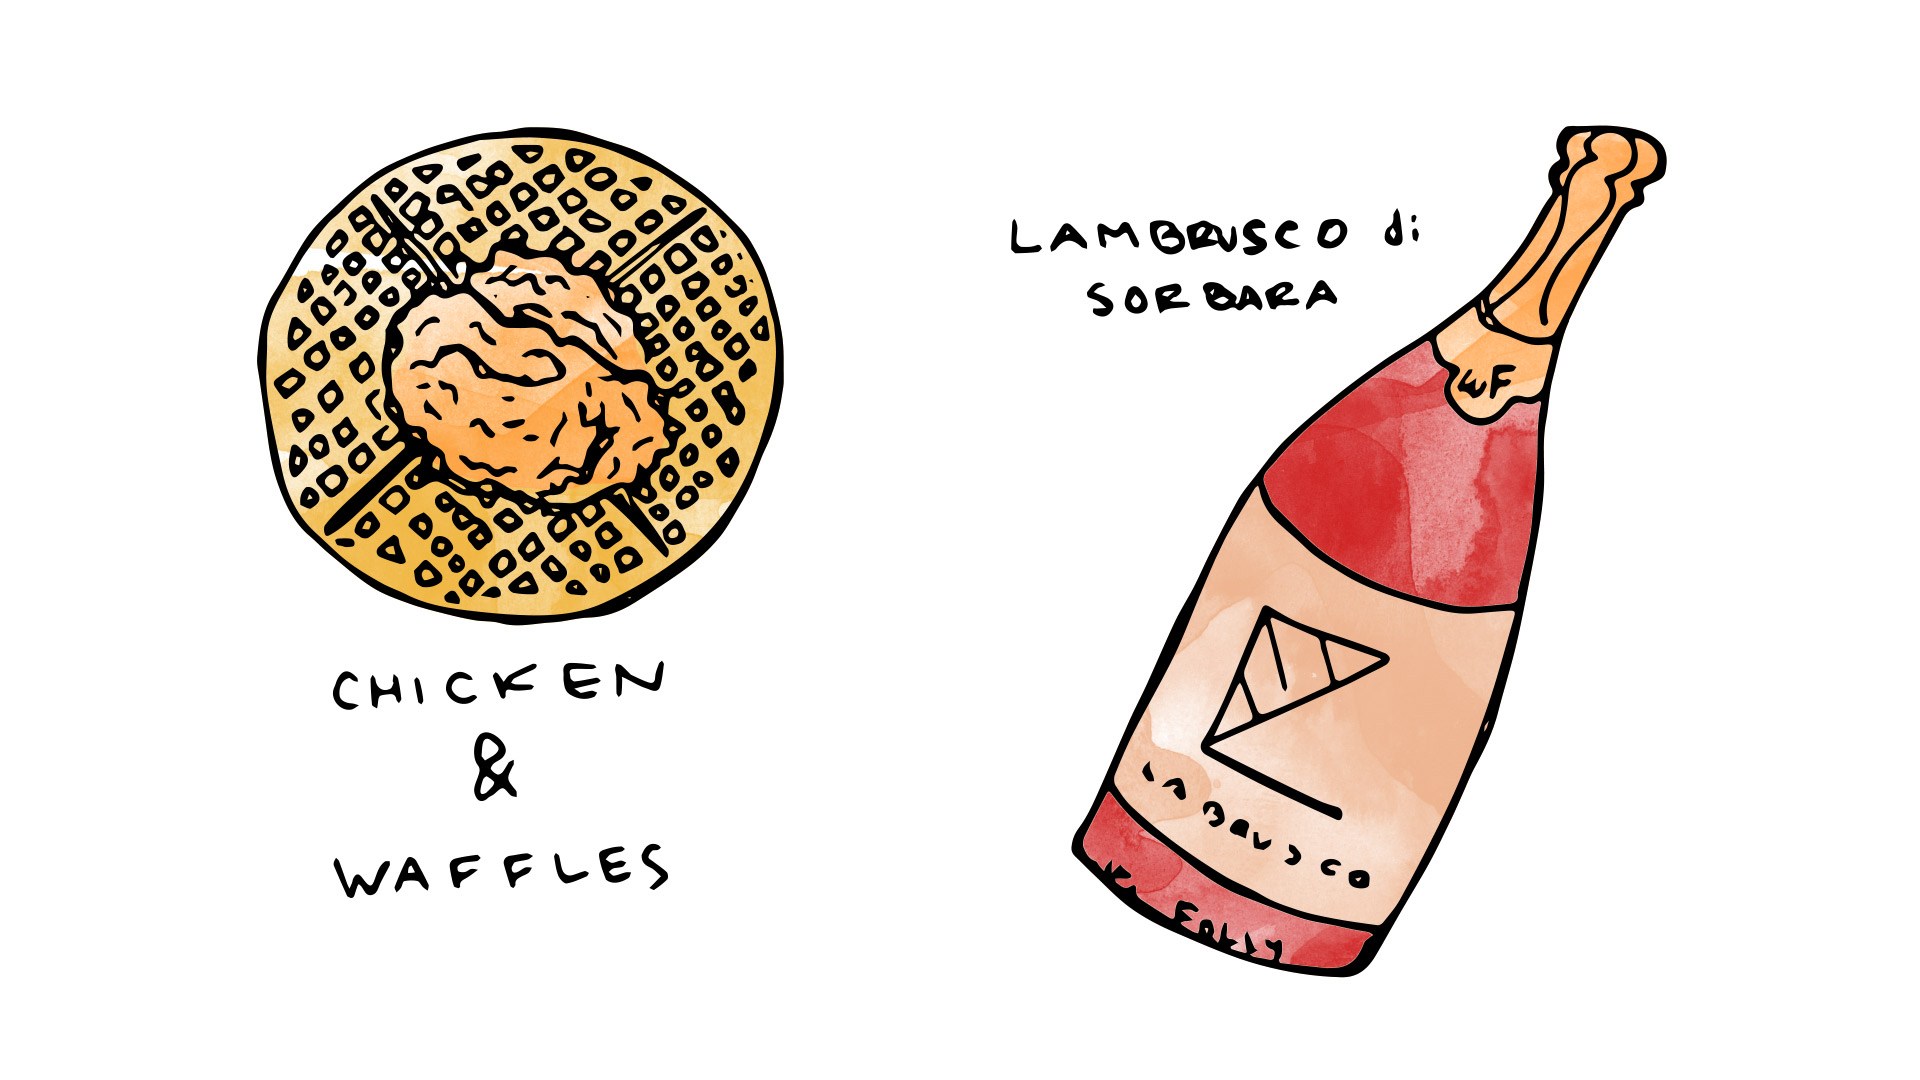 Chicken and waffles wine pairing with Lambrusco di Sorbara illustration by Wine Folly